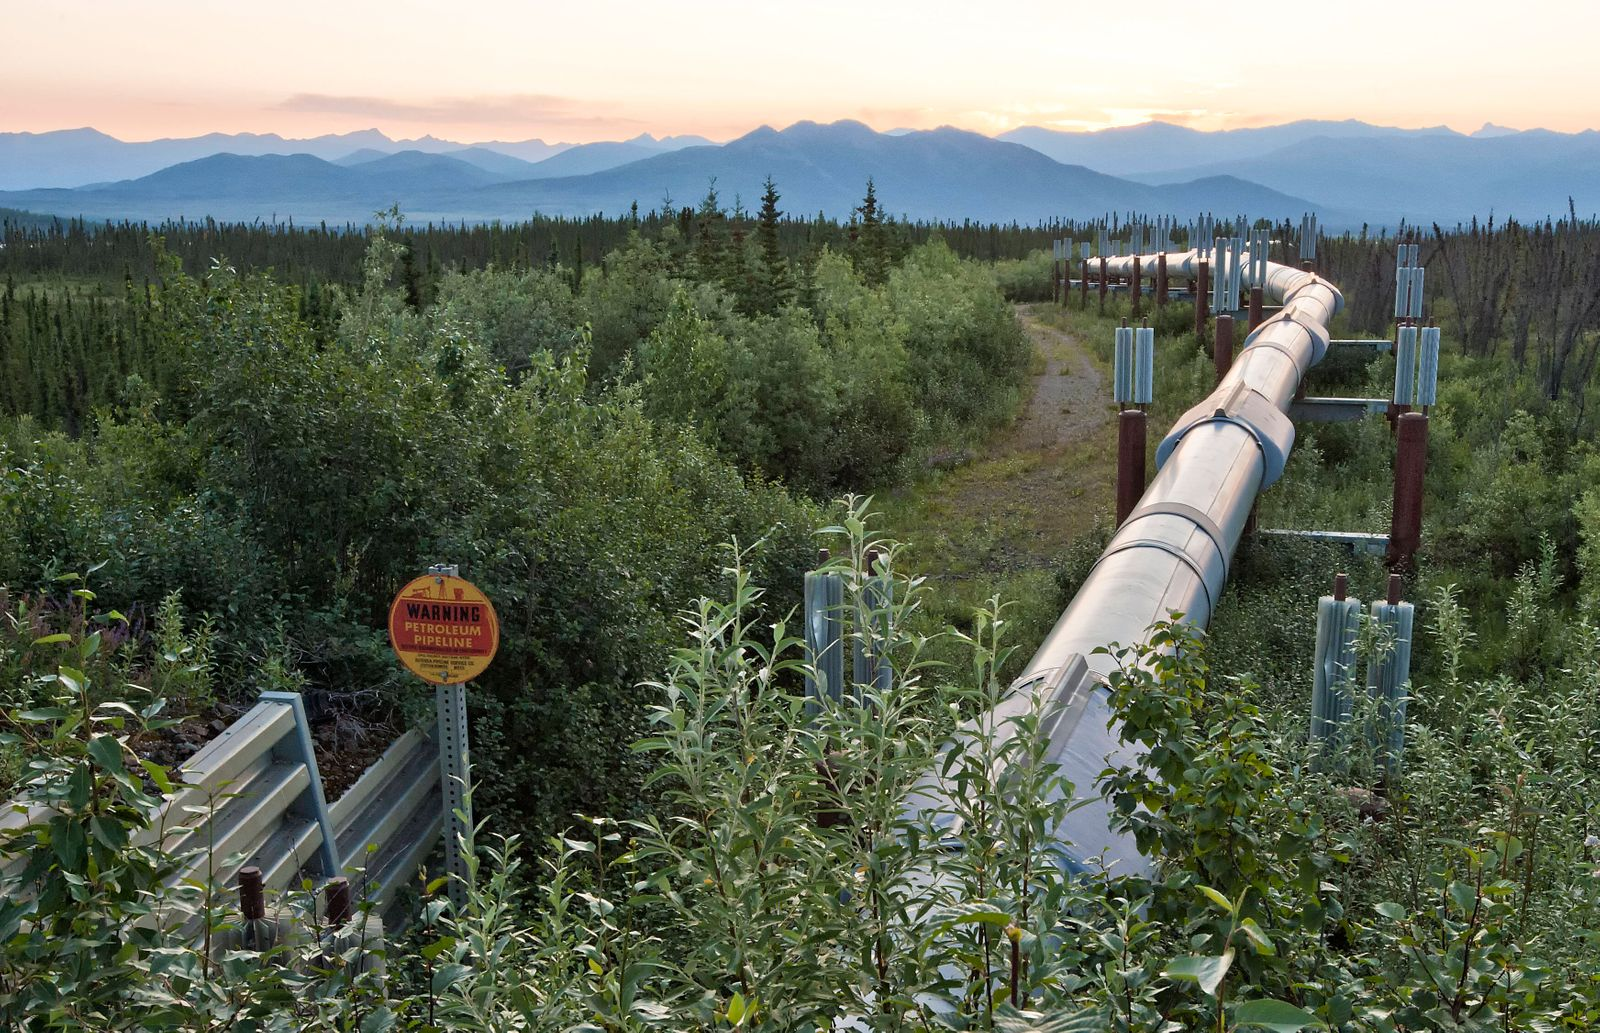 Alyeska Oil Pipeline from Prudhoe Bay to Valdez Alaska this coastal plain is threatened by potential oil and gas develop